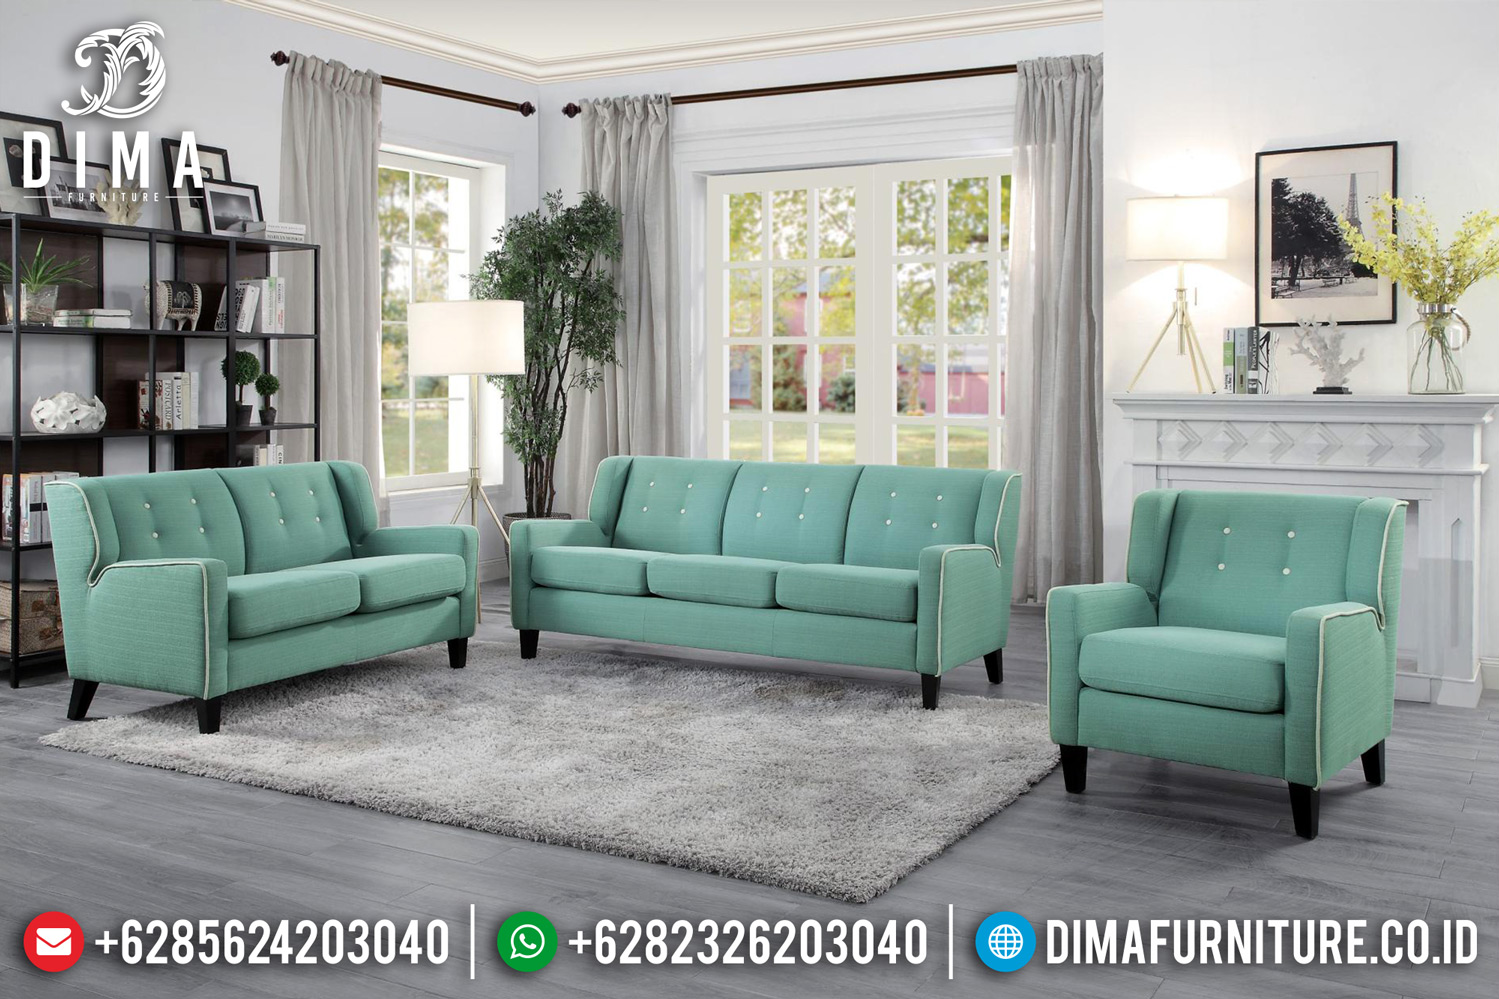 New Set Sofa Tamu Minimalis Eve Modern Design 2020 TTJ-0492